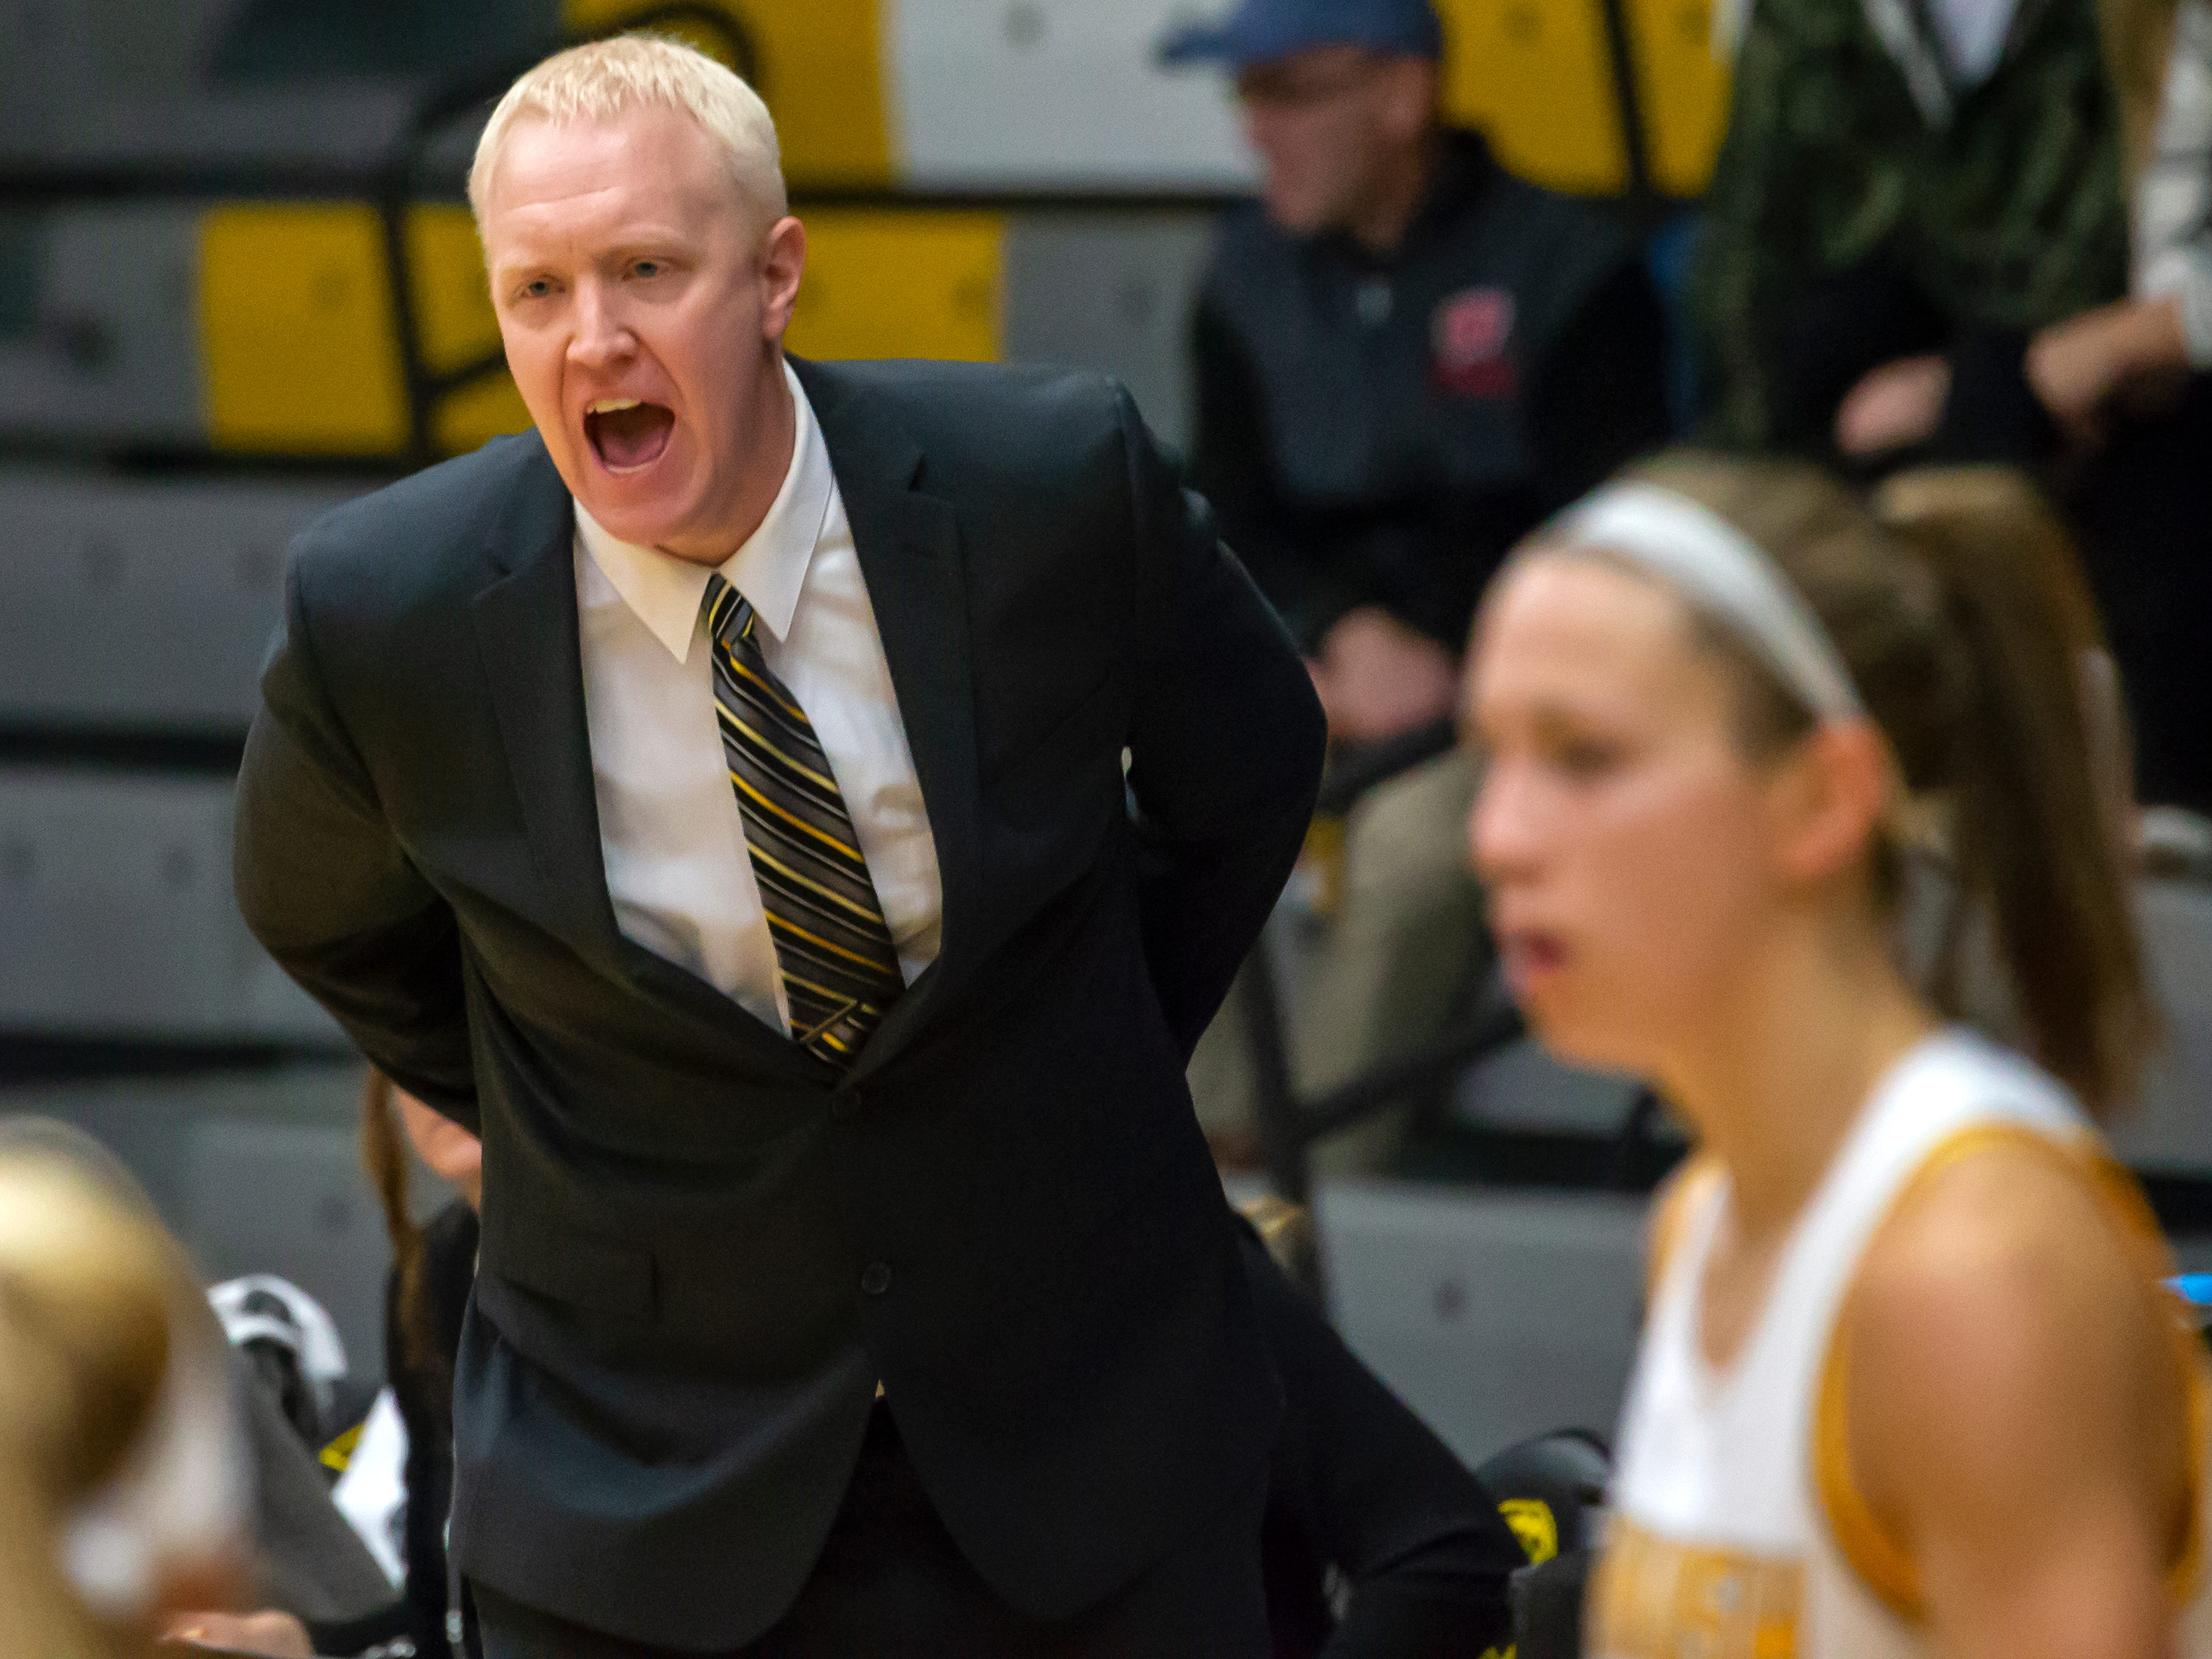 UW-Oshkosh head coach Brad Fischer directs the players on the court at the Kolf Sports Center on Saturday, January 5, 2019.